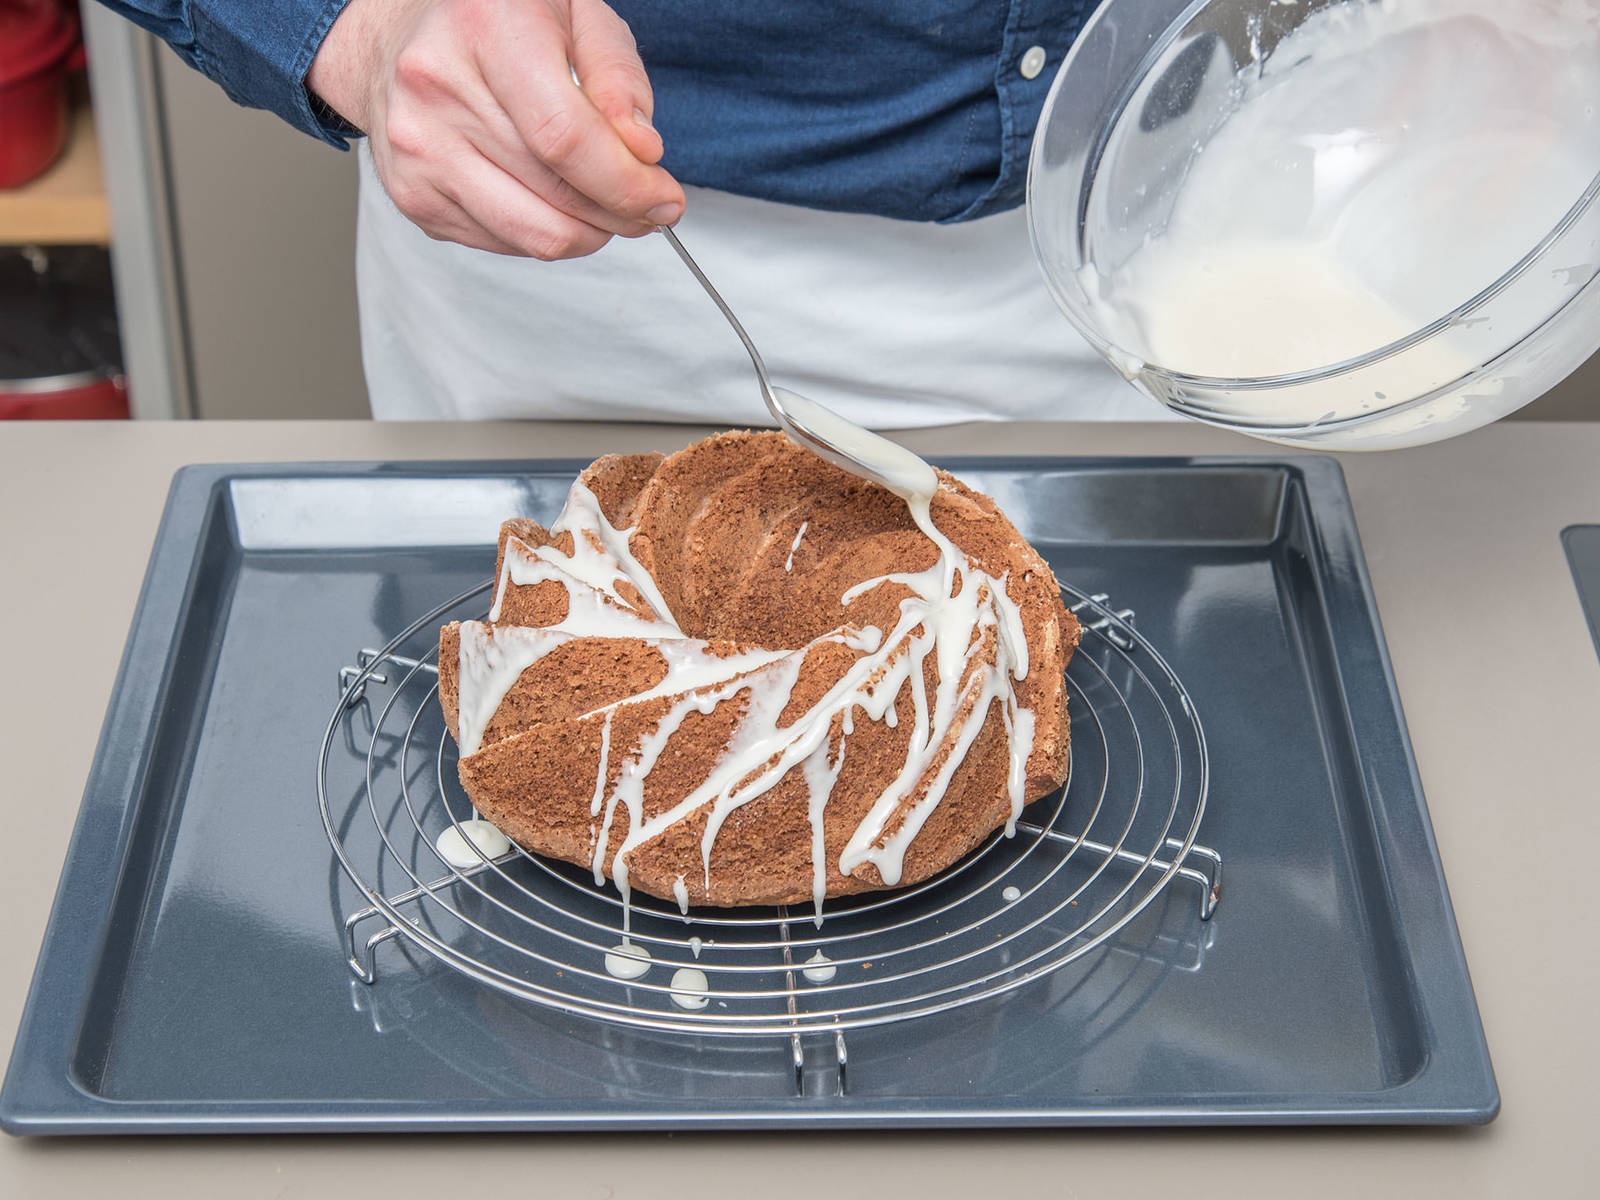 For the icing, whisk together the brown butter and confectioner's sugar. Add the sour cream, remaining whiskey, and salt and whisk until completely smooth. Flip out the cooled bundt cake. Pour icing over the cake, and enjoy!